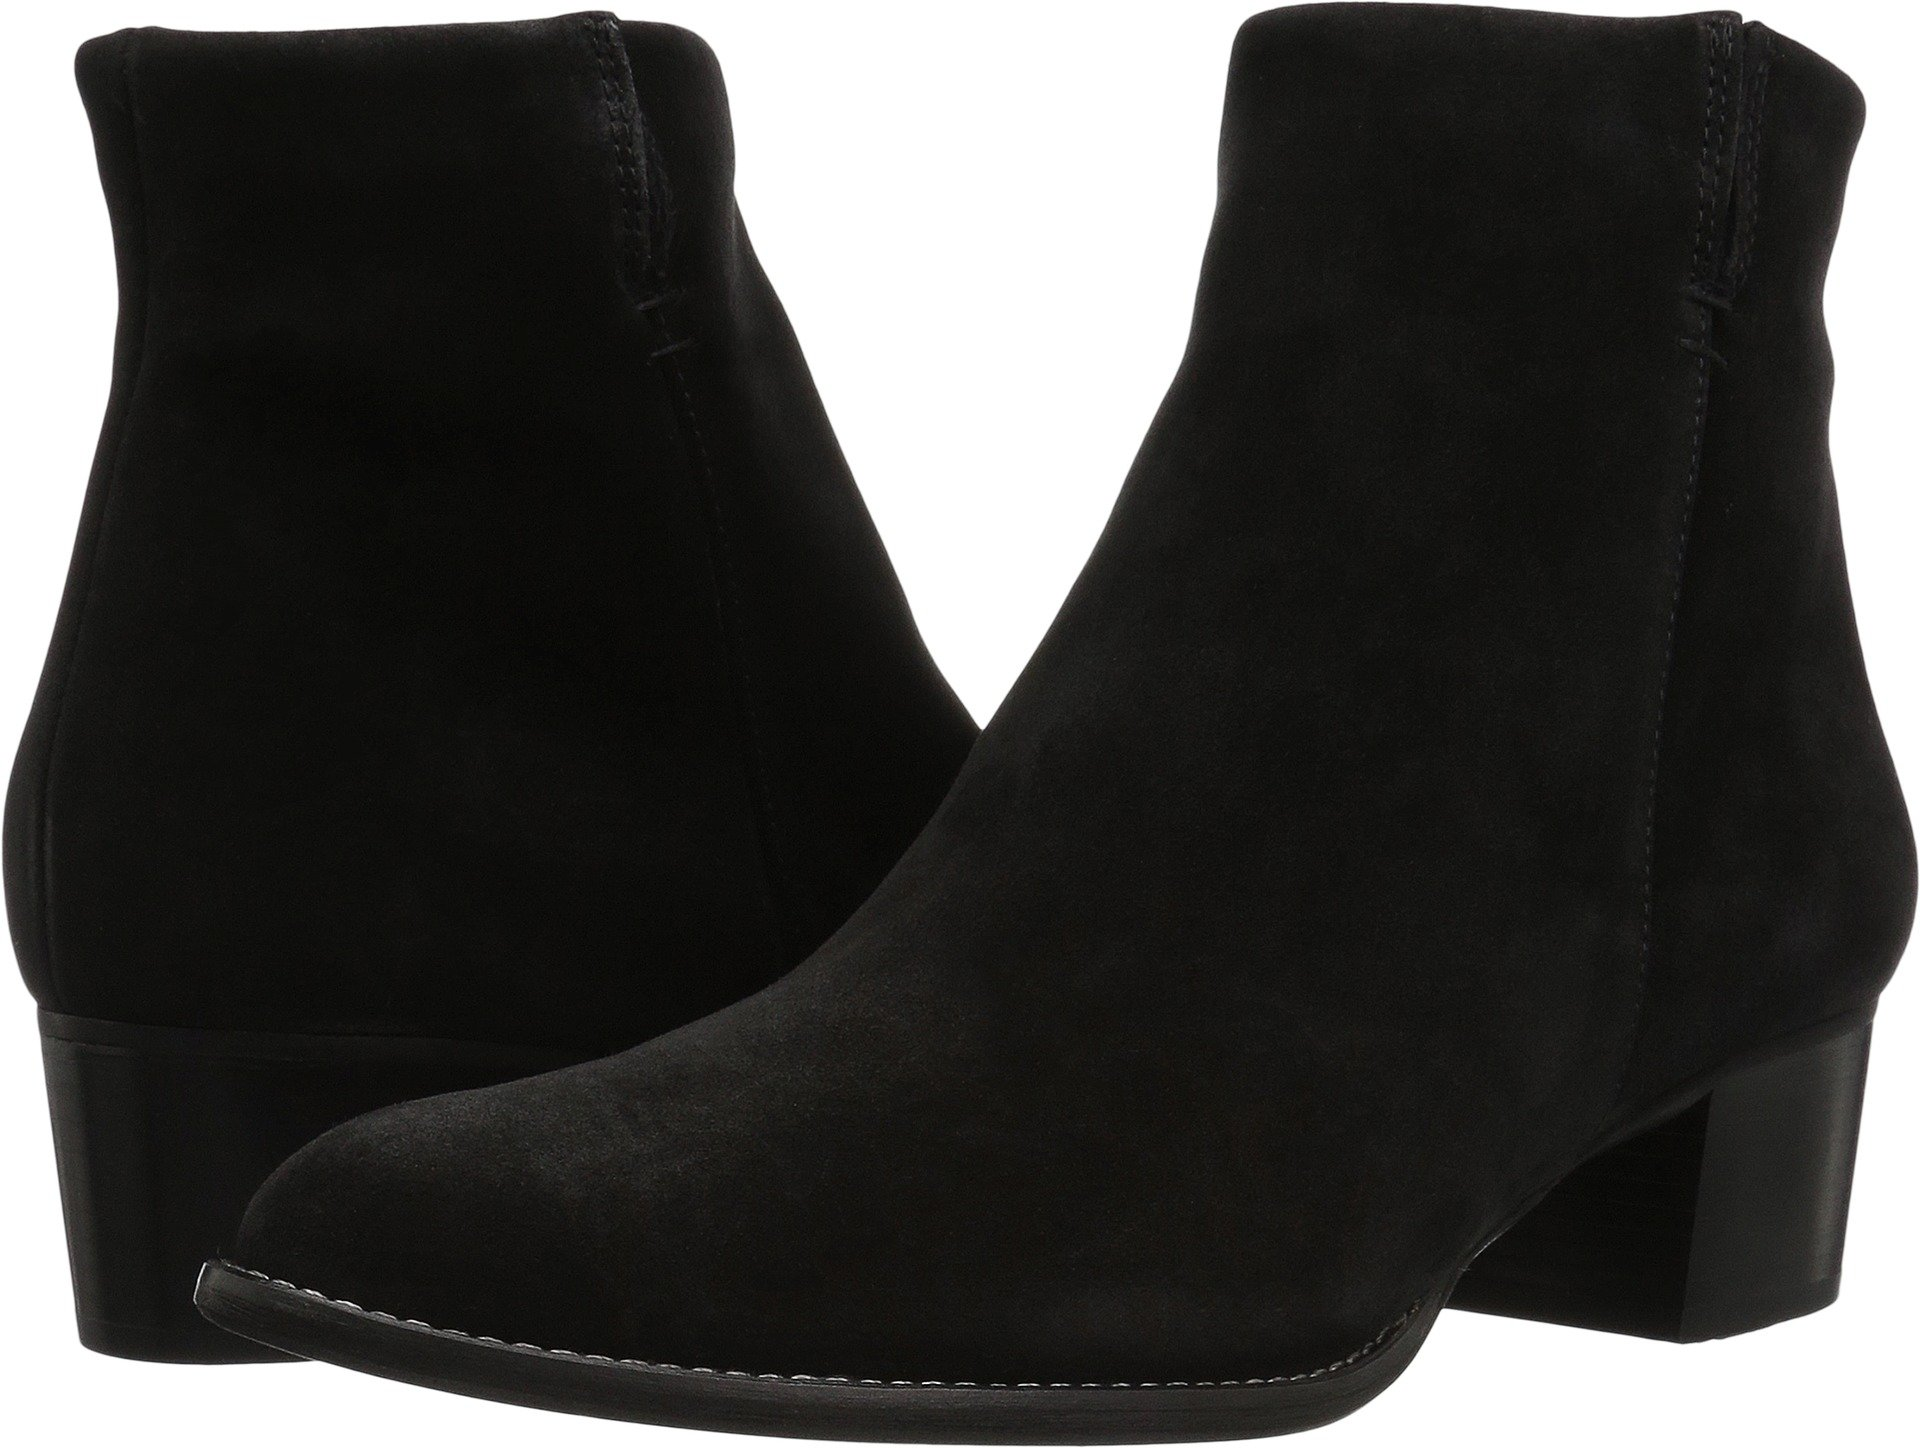 Paul Green Women's North Ankle Boot, Black Hydro, 6.5 Medium US